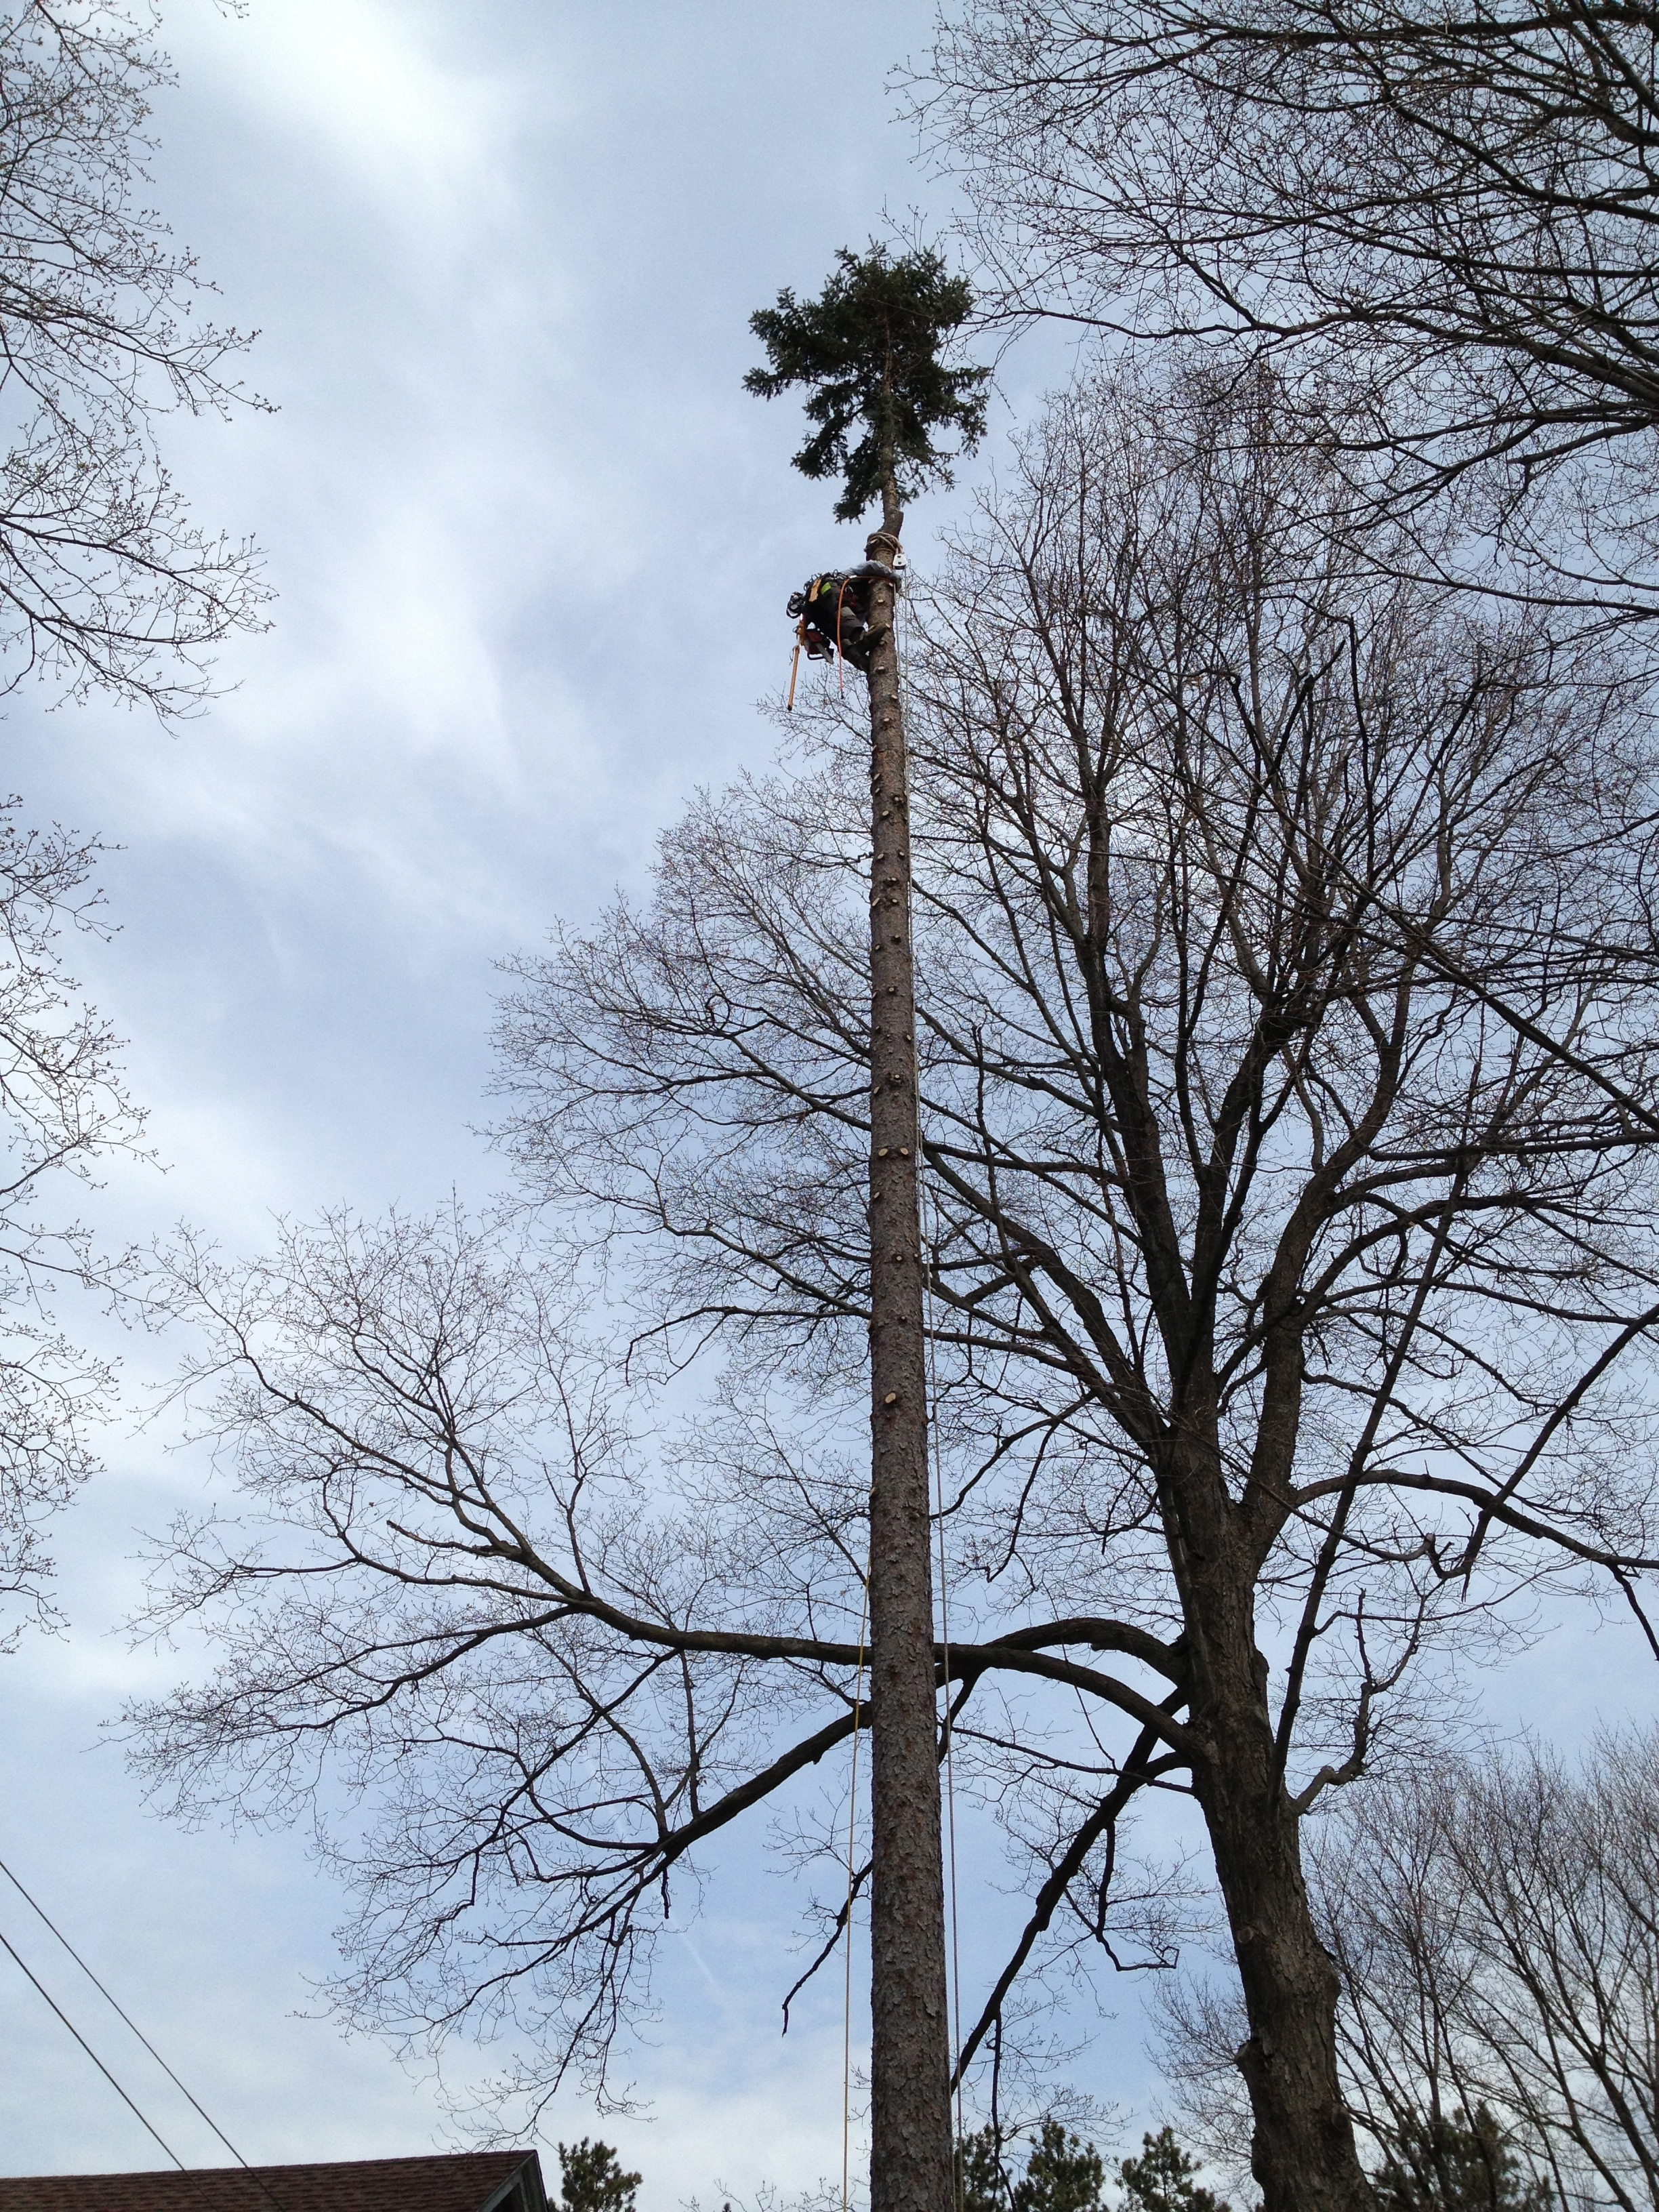 Using climbing spikes, certified arborist Caleb White de-limbs a spruce tree, before bringing the trunk down.